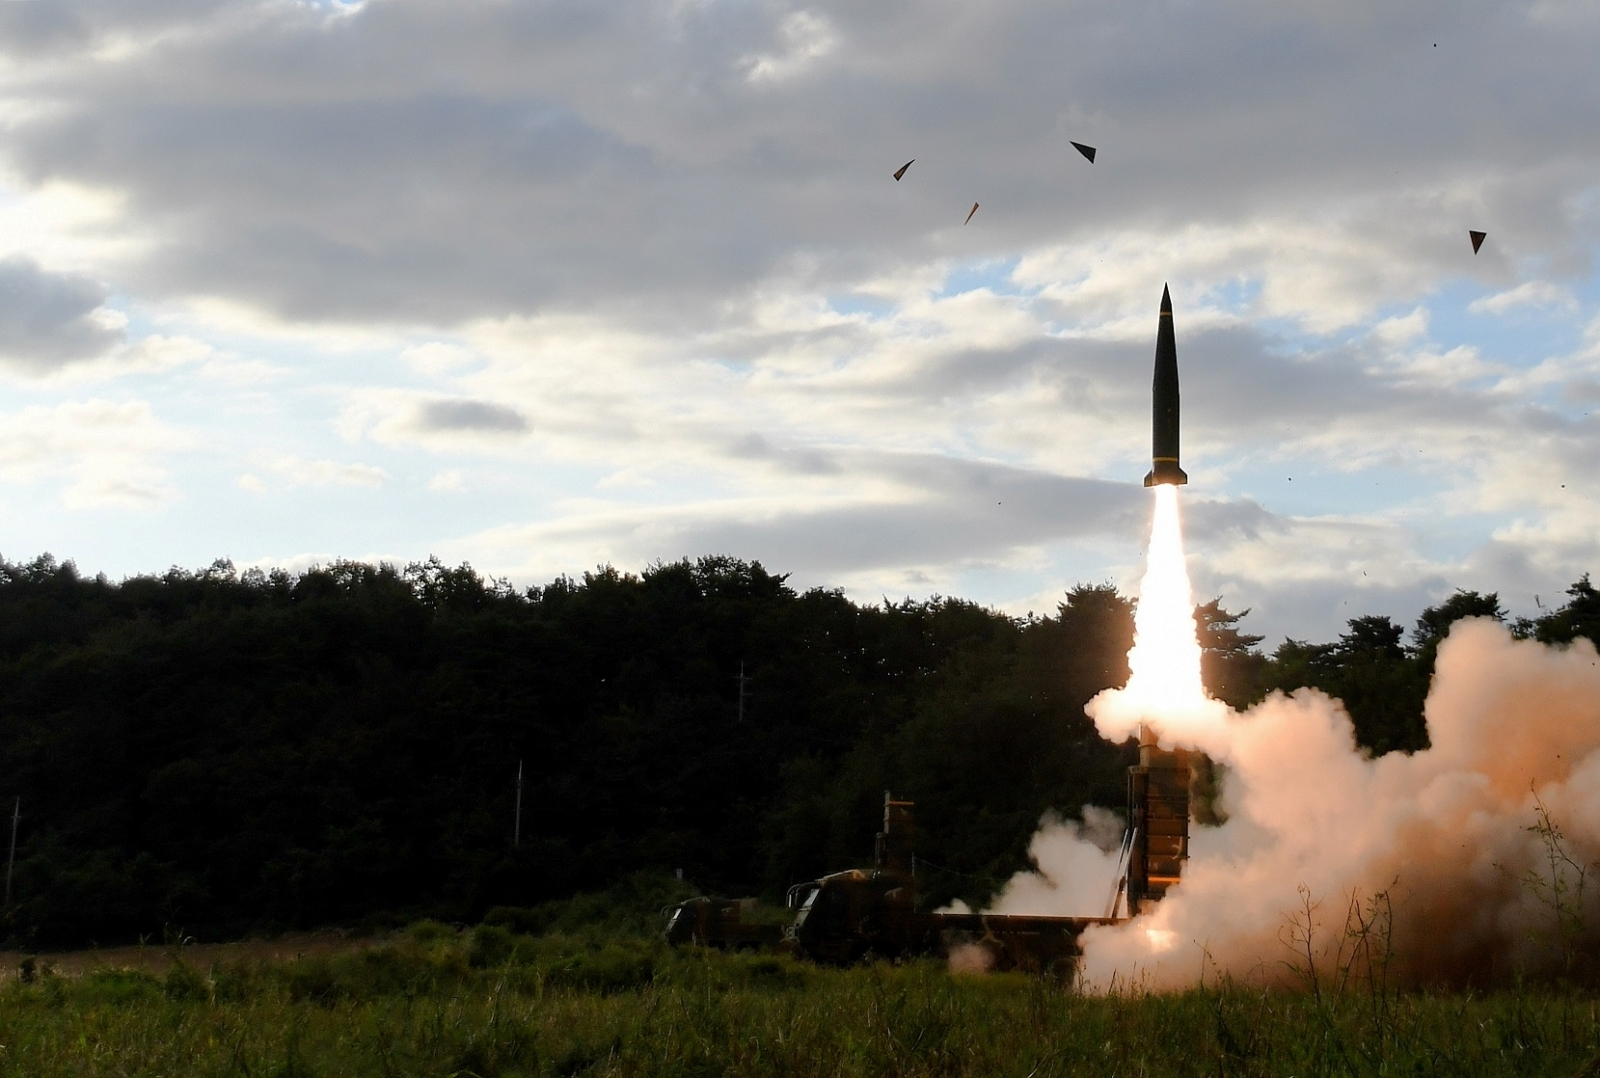 South Korea missiles against North Korea